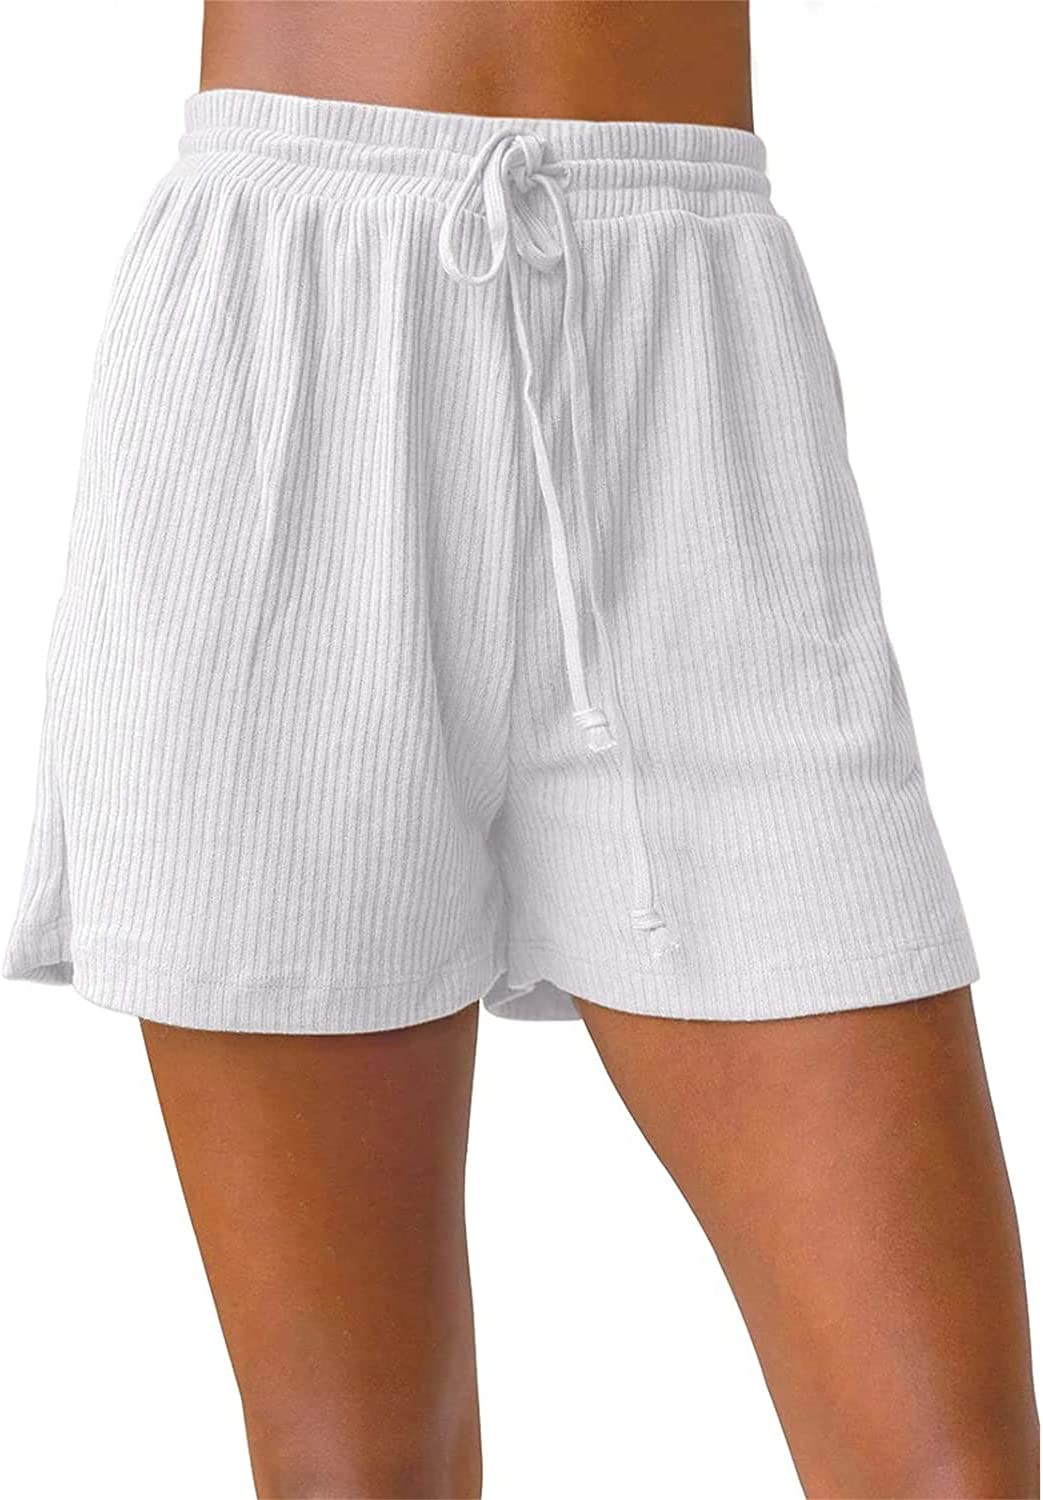 Loose Beach Shorts for Department OFFicial shop store Women Knit Drawstring Solid Color Short P